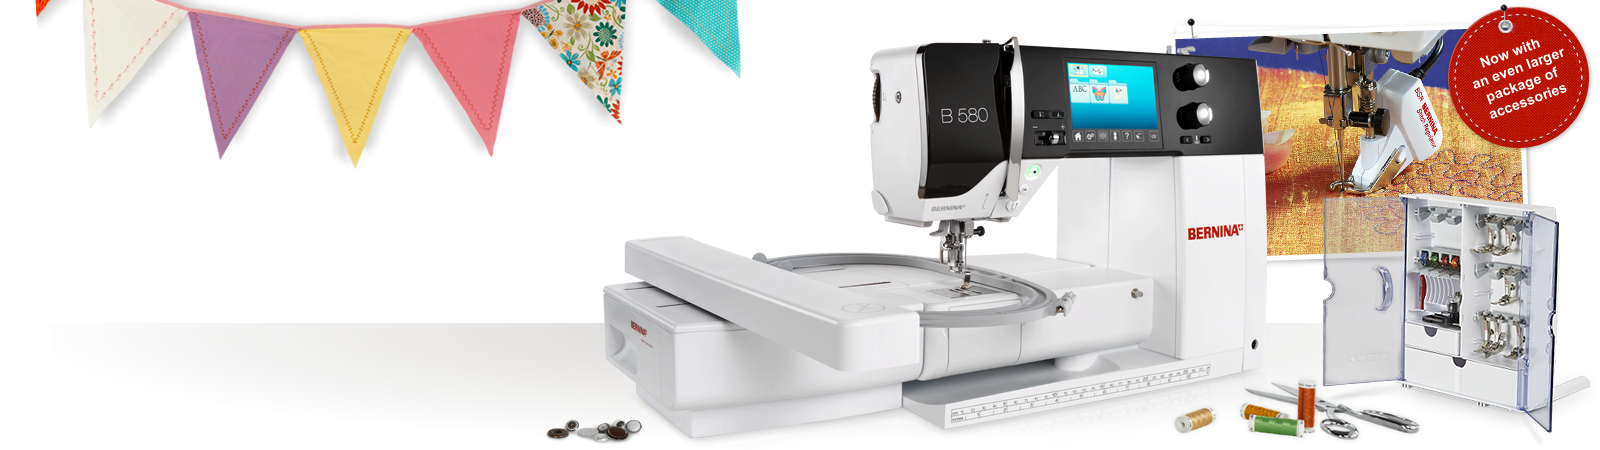 Picture: BERNINA 580